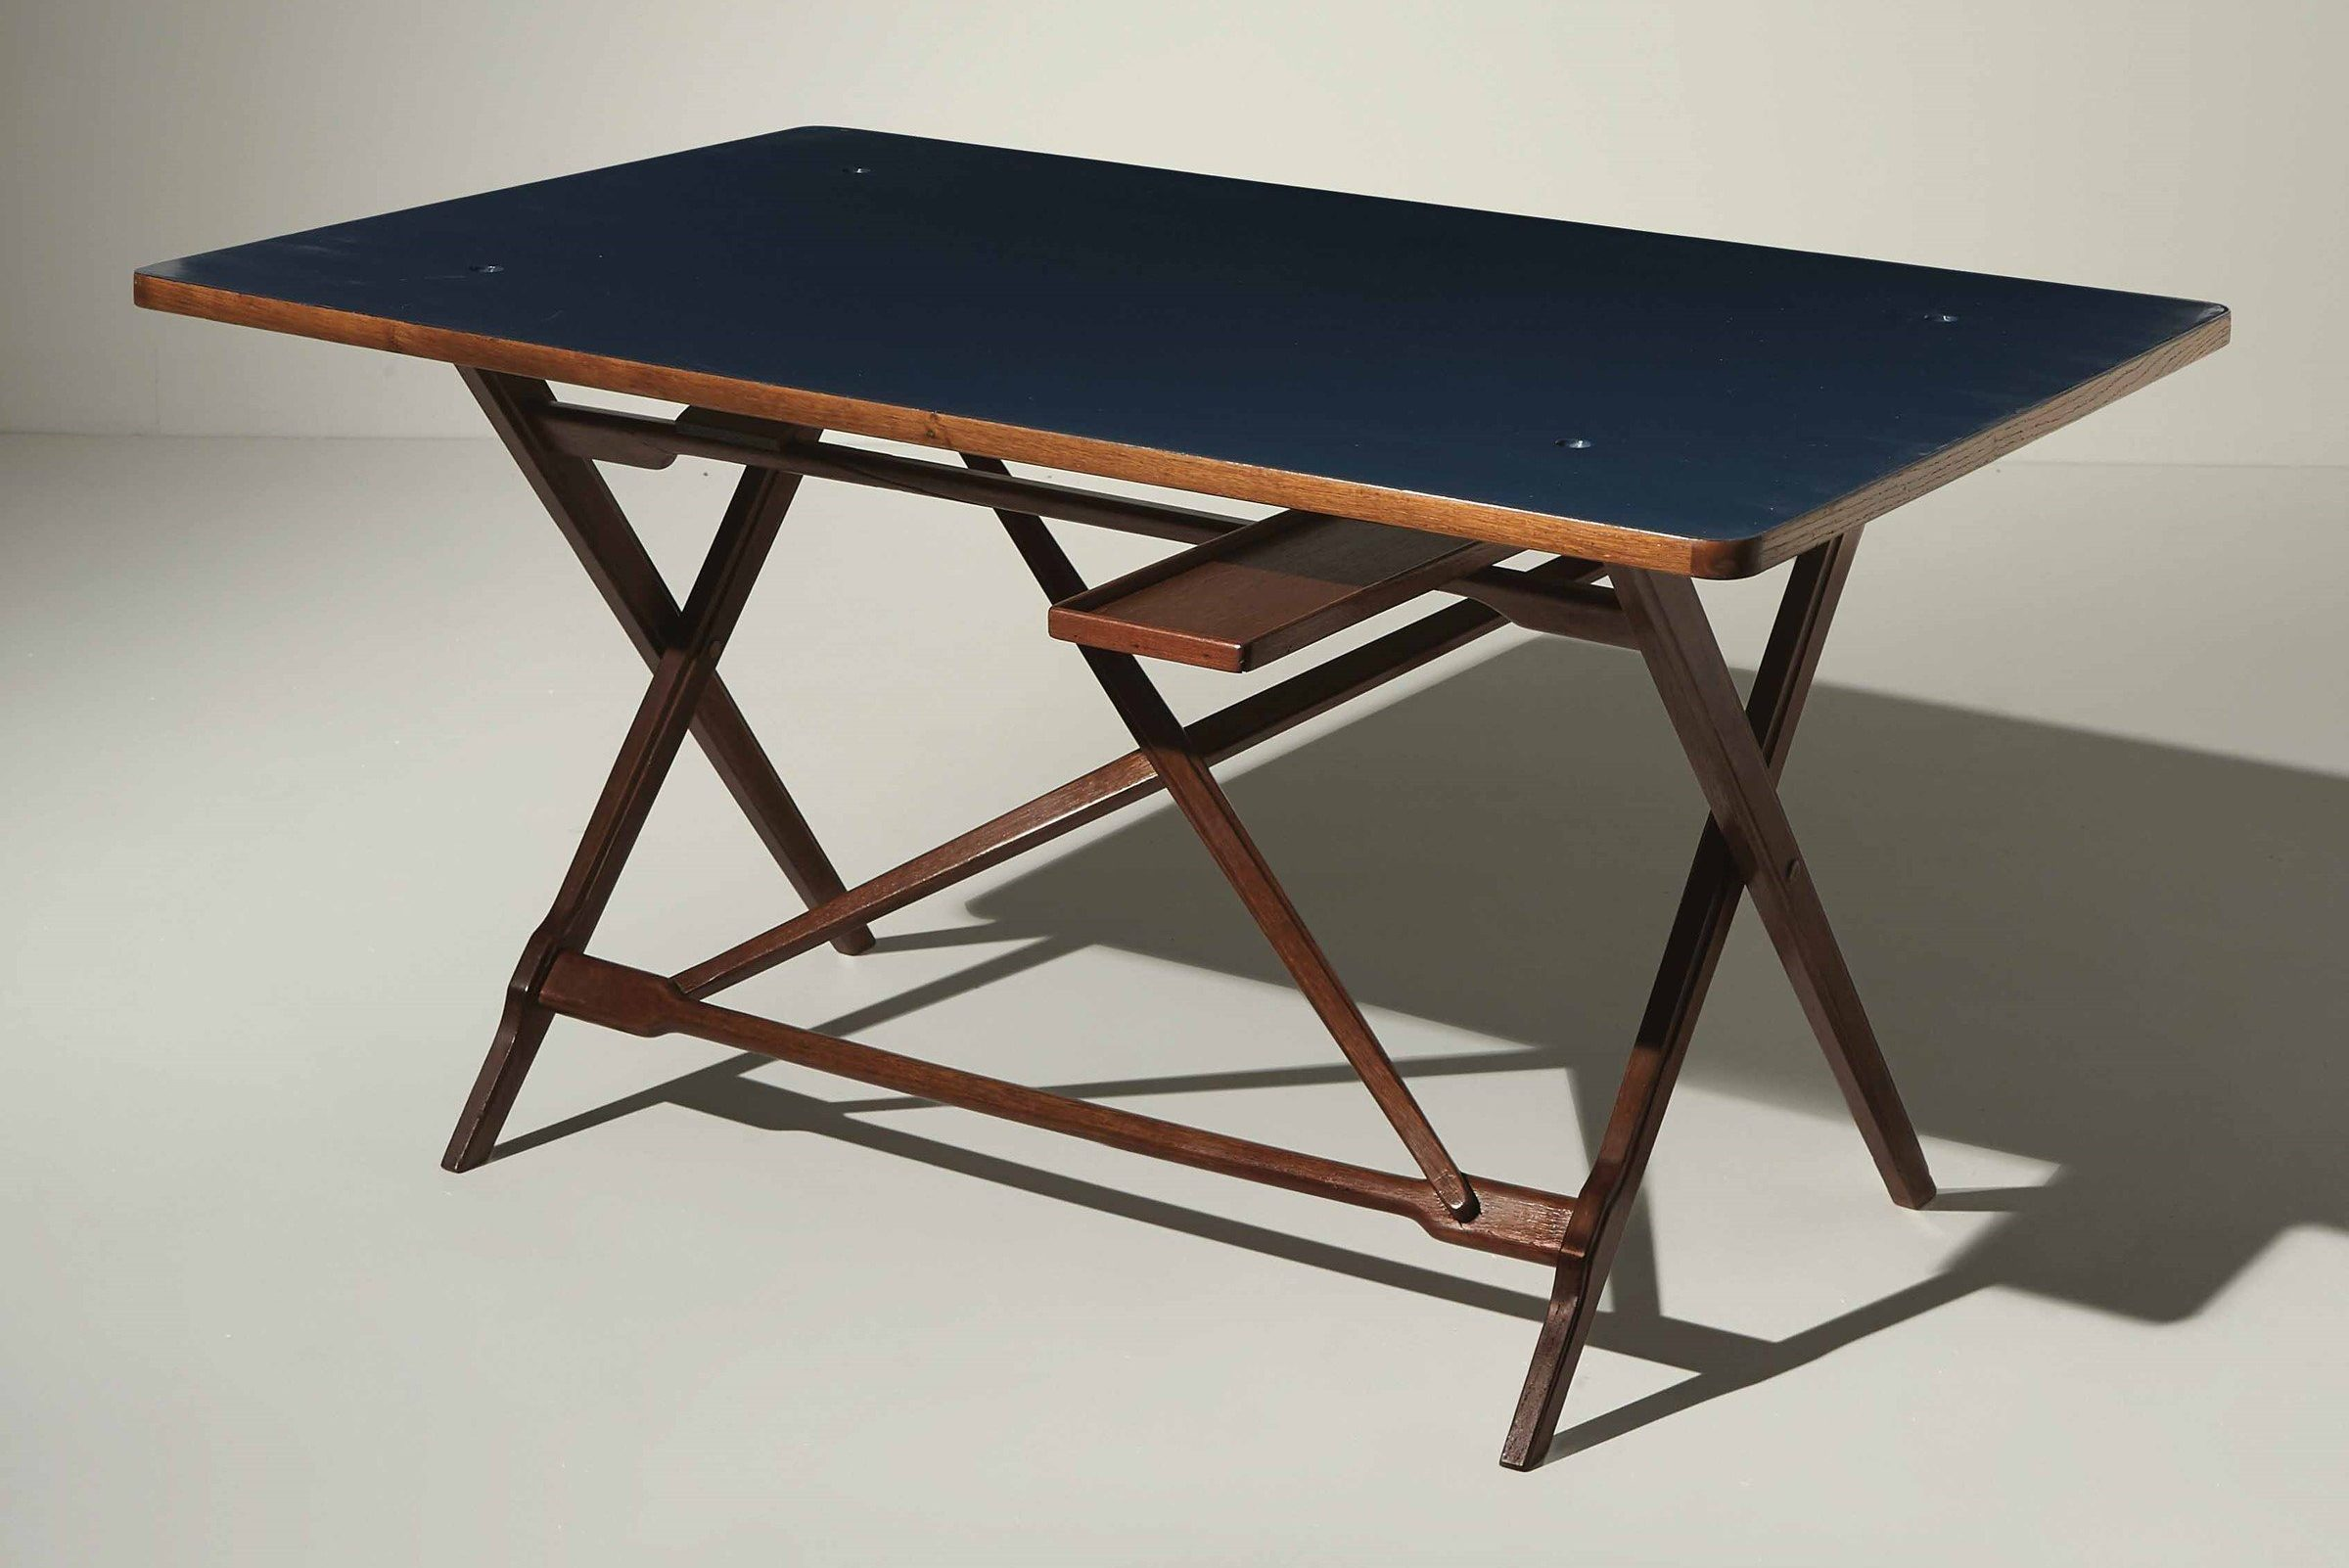 Iganzio Gardella |                              Desk with reversible blue top